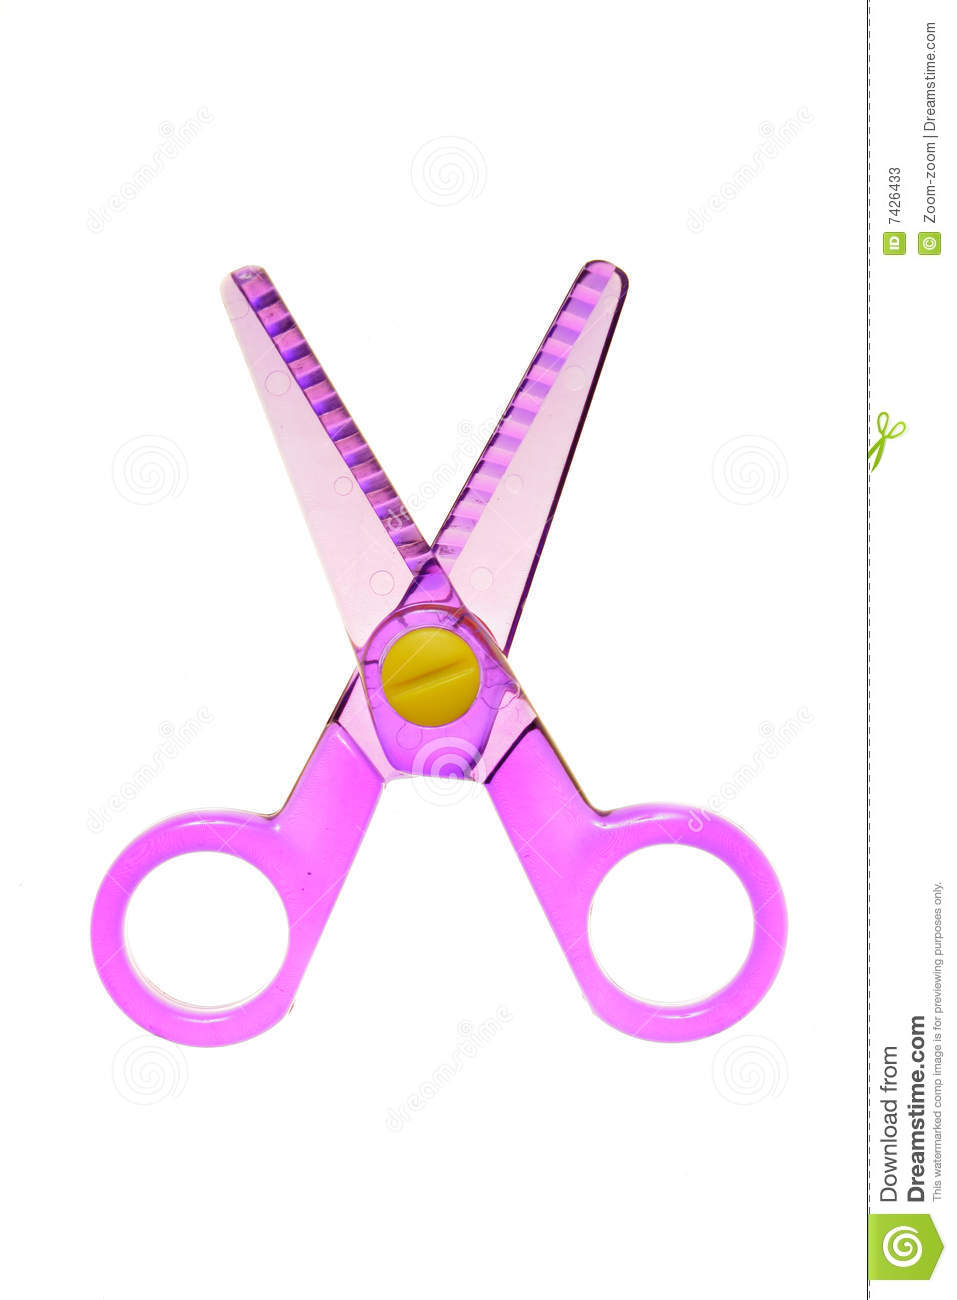 Download Toy scissors stock image. Image of instrument, child, blade - 7426433